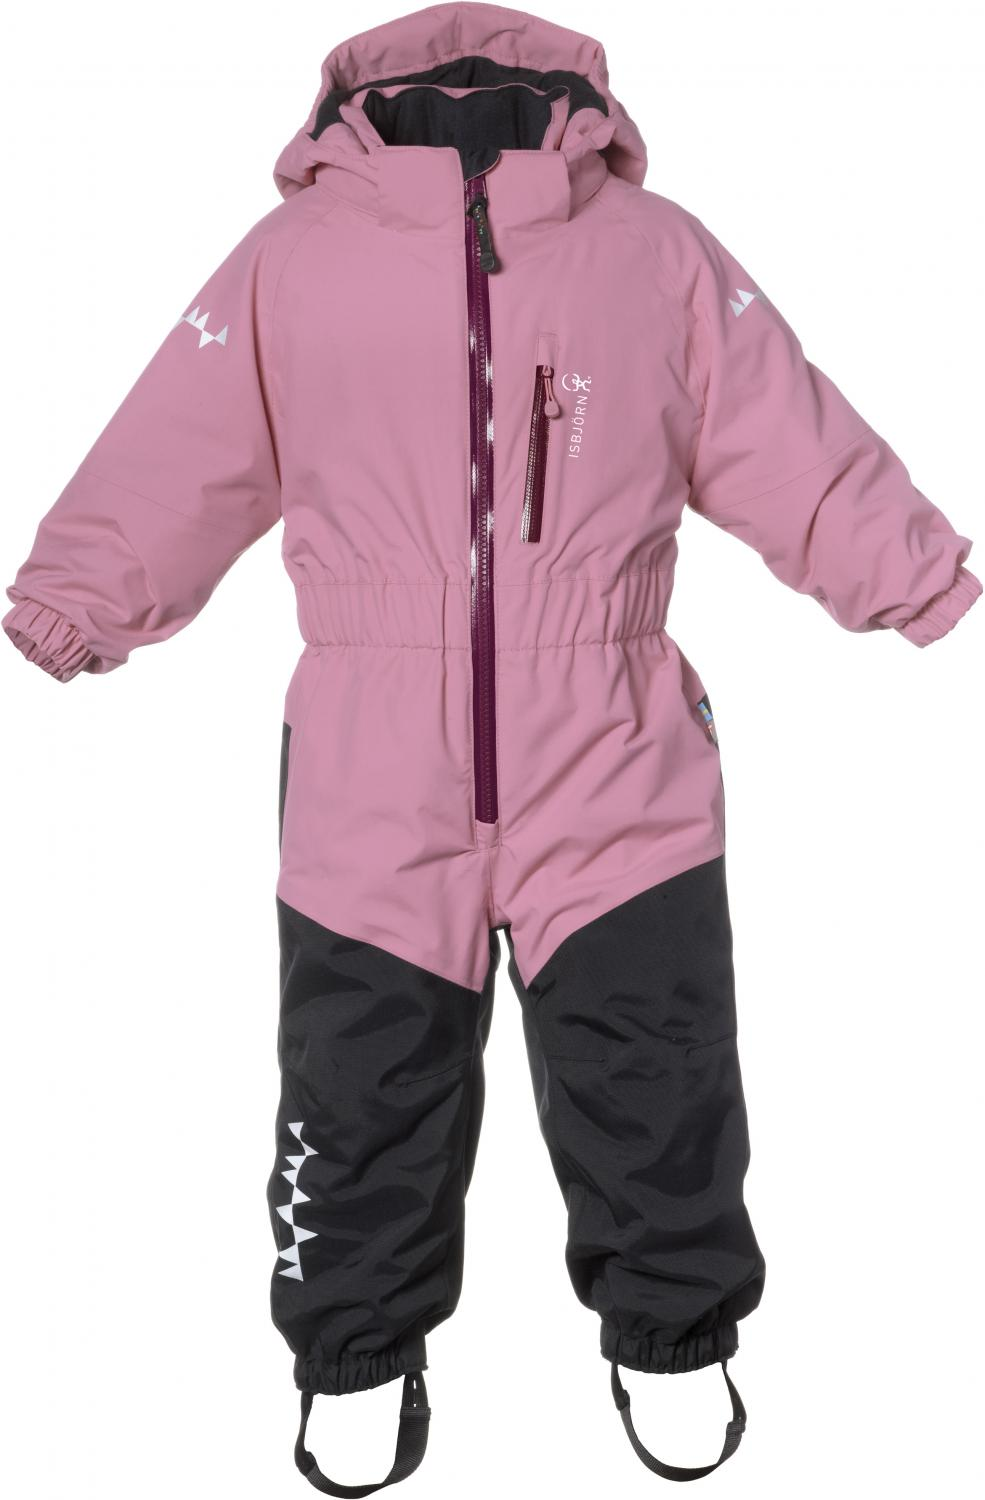 Isbjörn Penguin wintersuit Dusty pink ss19-20